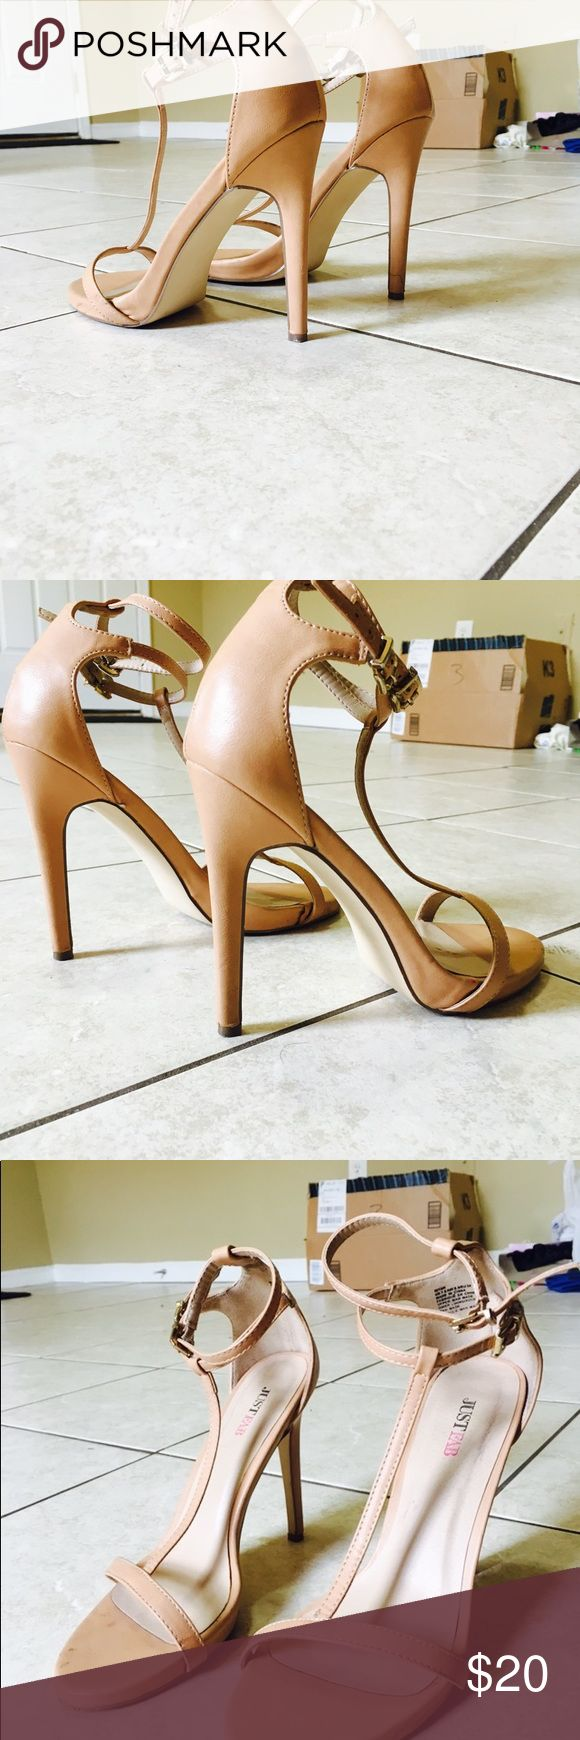 Nude dress heel. Very pretty. Perfect match for most outfits. Selling cos not my size. Worn a couple times JustFab Shoes Heels